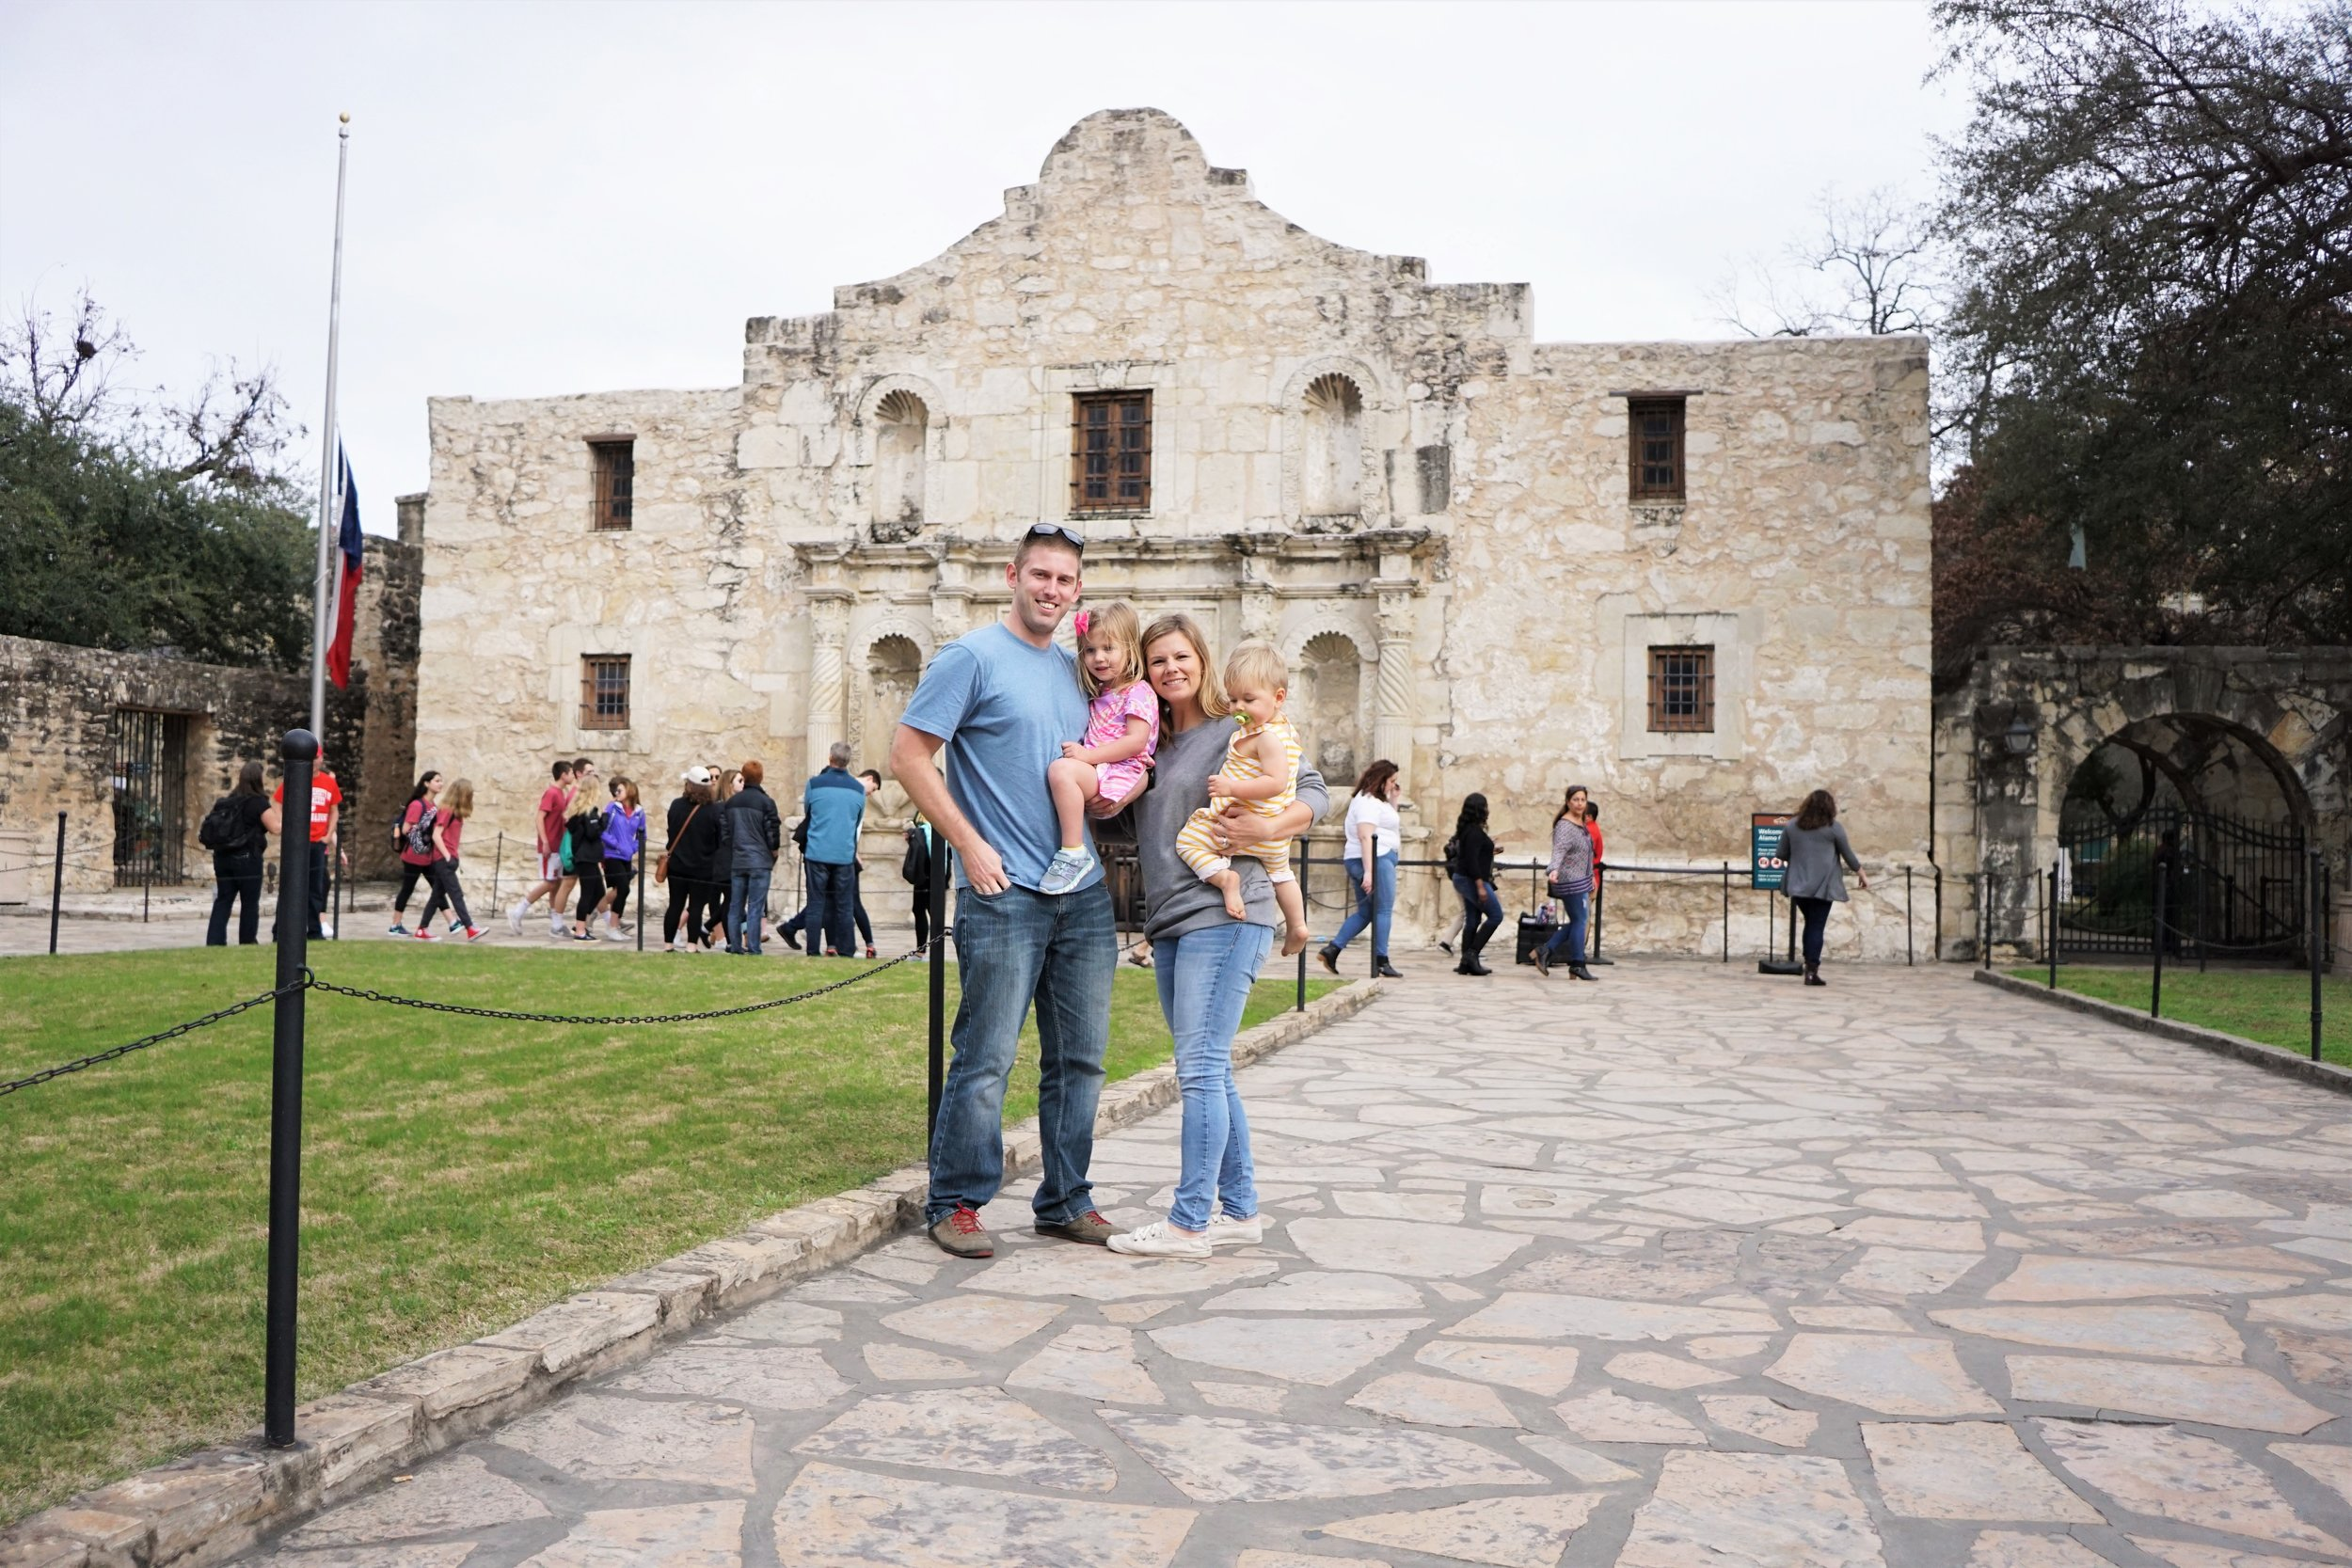 All of us in front of The Alamo